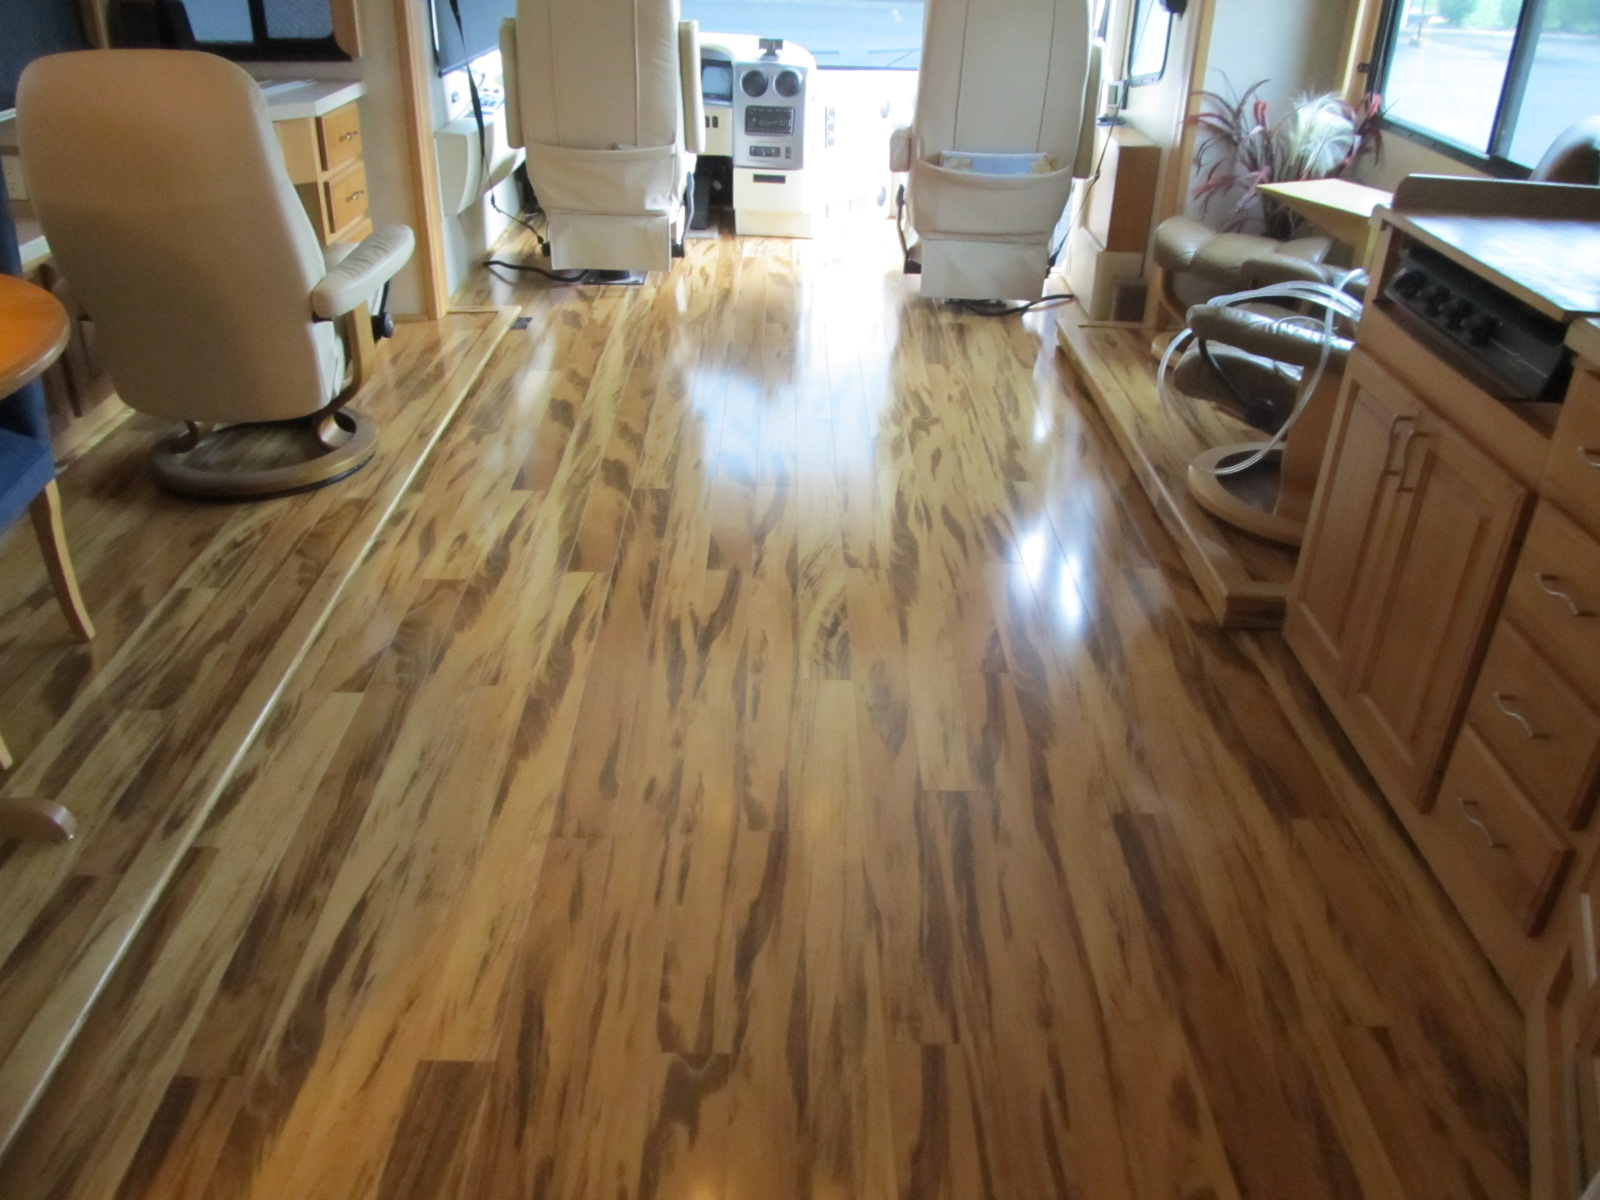 Shades of laminate flooring wood floors for Shades of laminate flooring